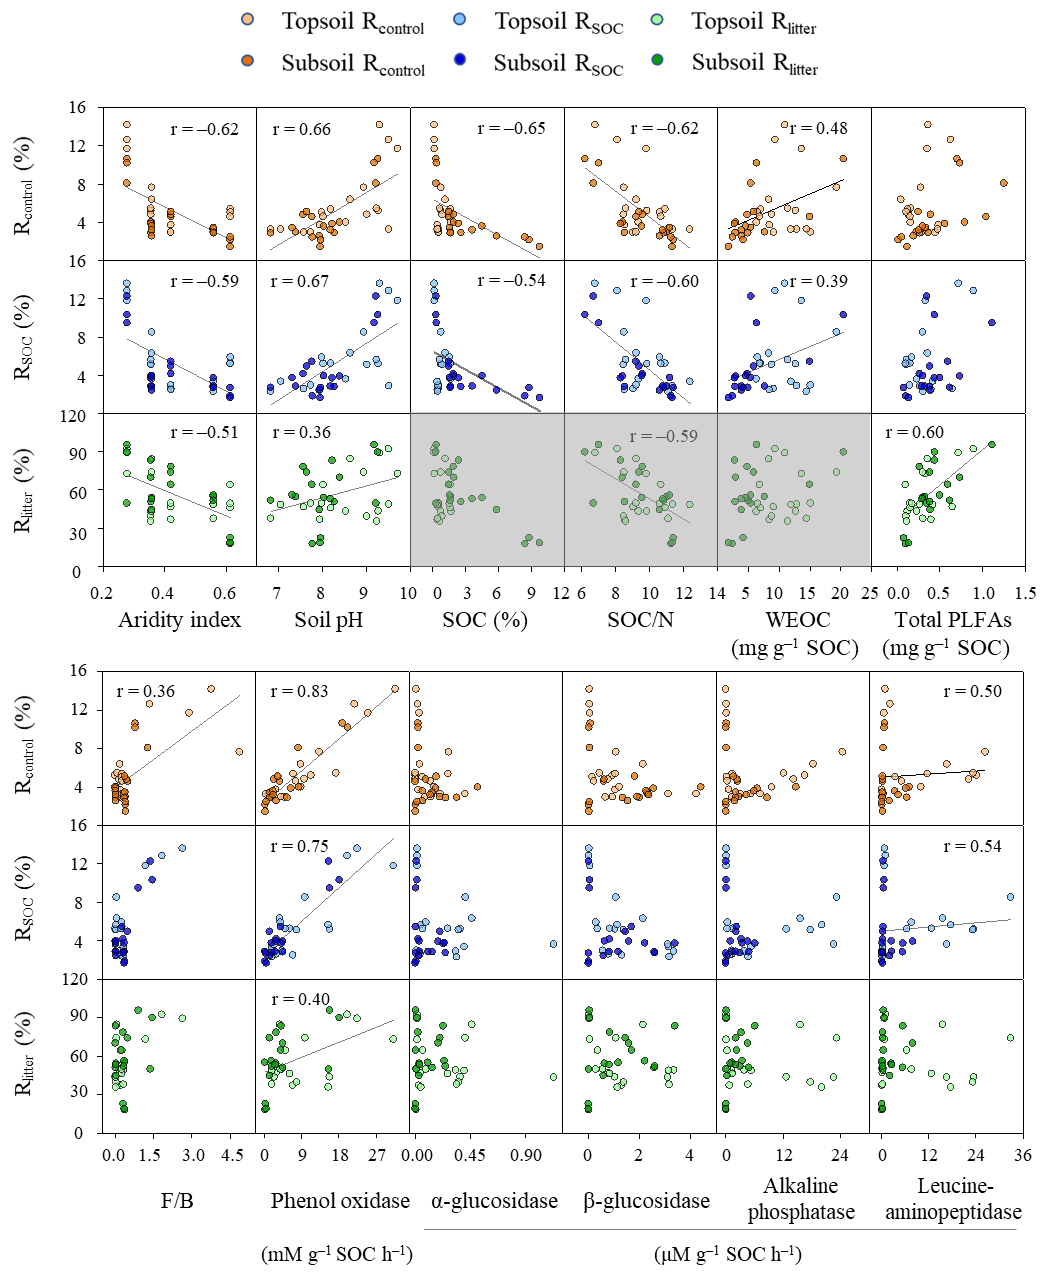 BG - Past aridity's effect on carbon mineralization